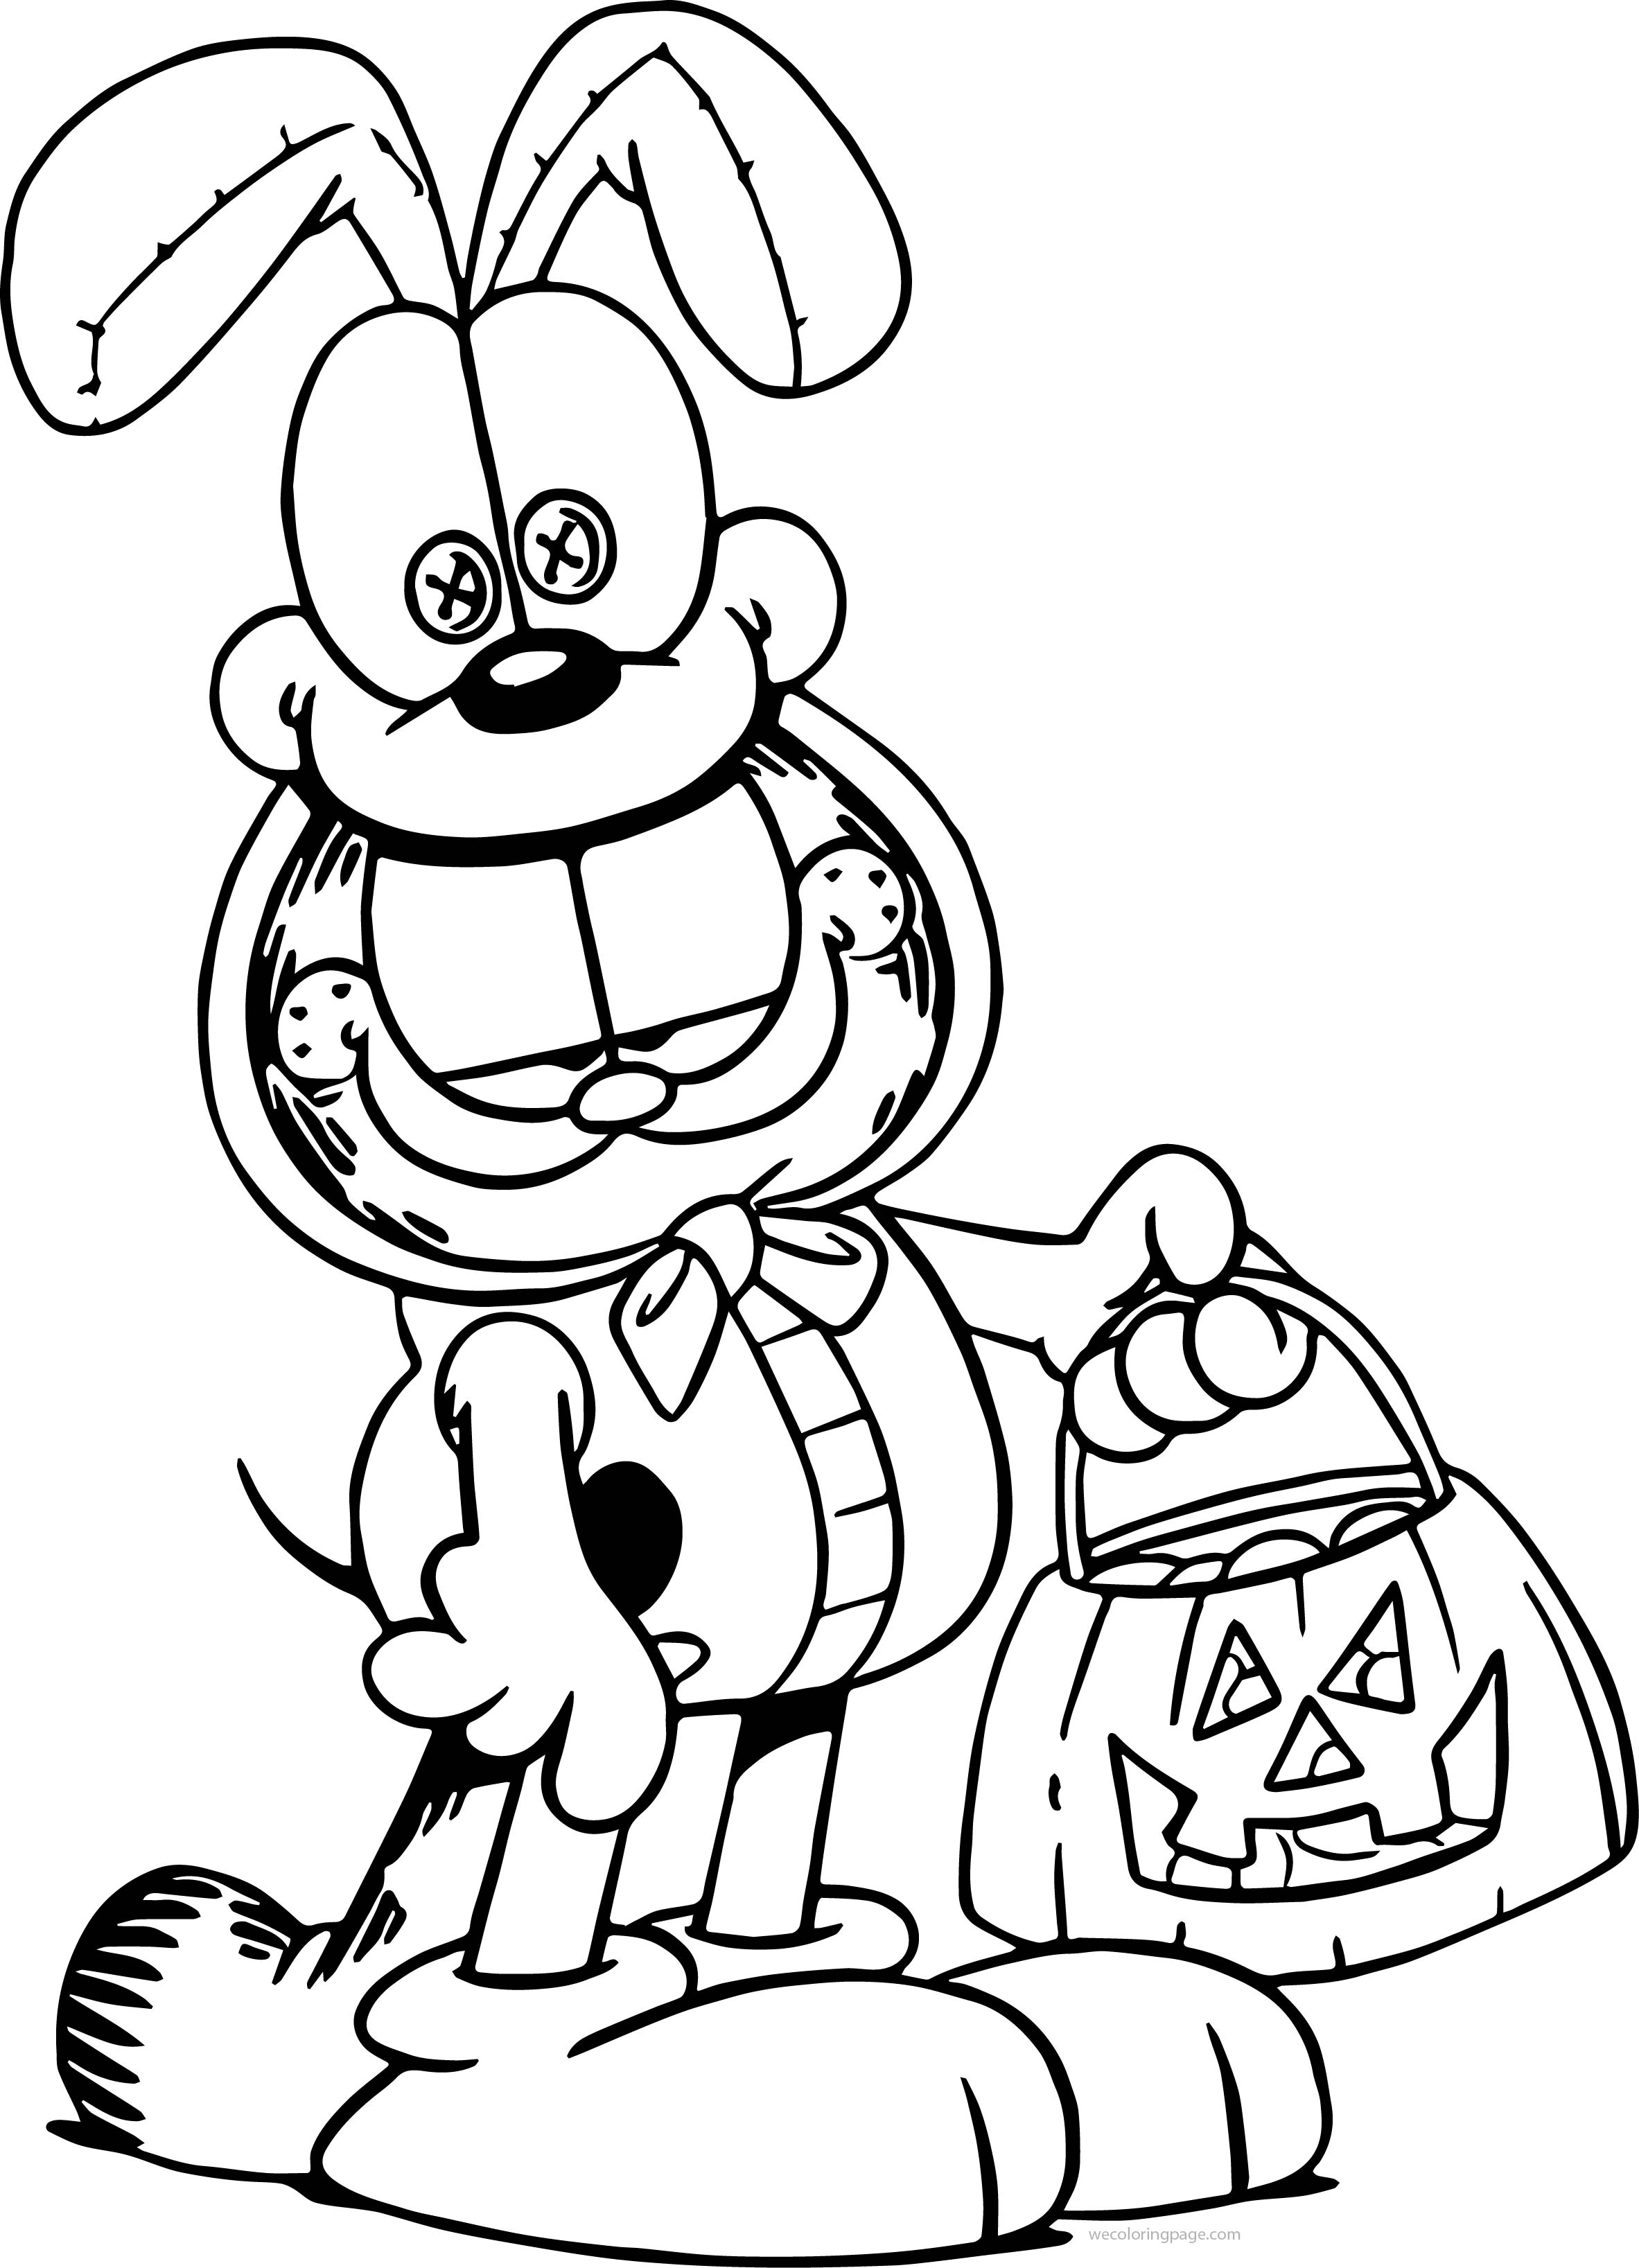 garfield coloring pages garfield coloring pages to download and print for free pages garfield coloring